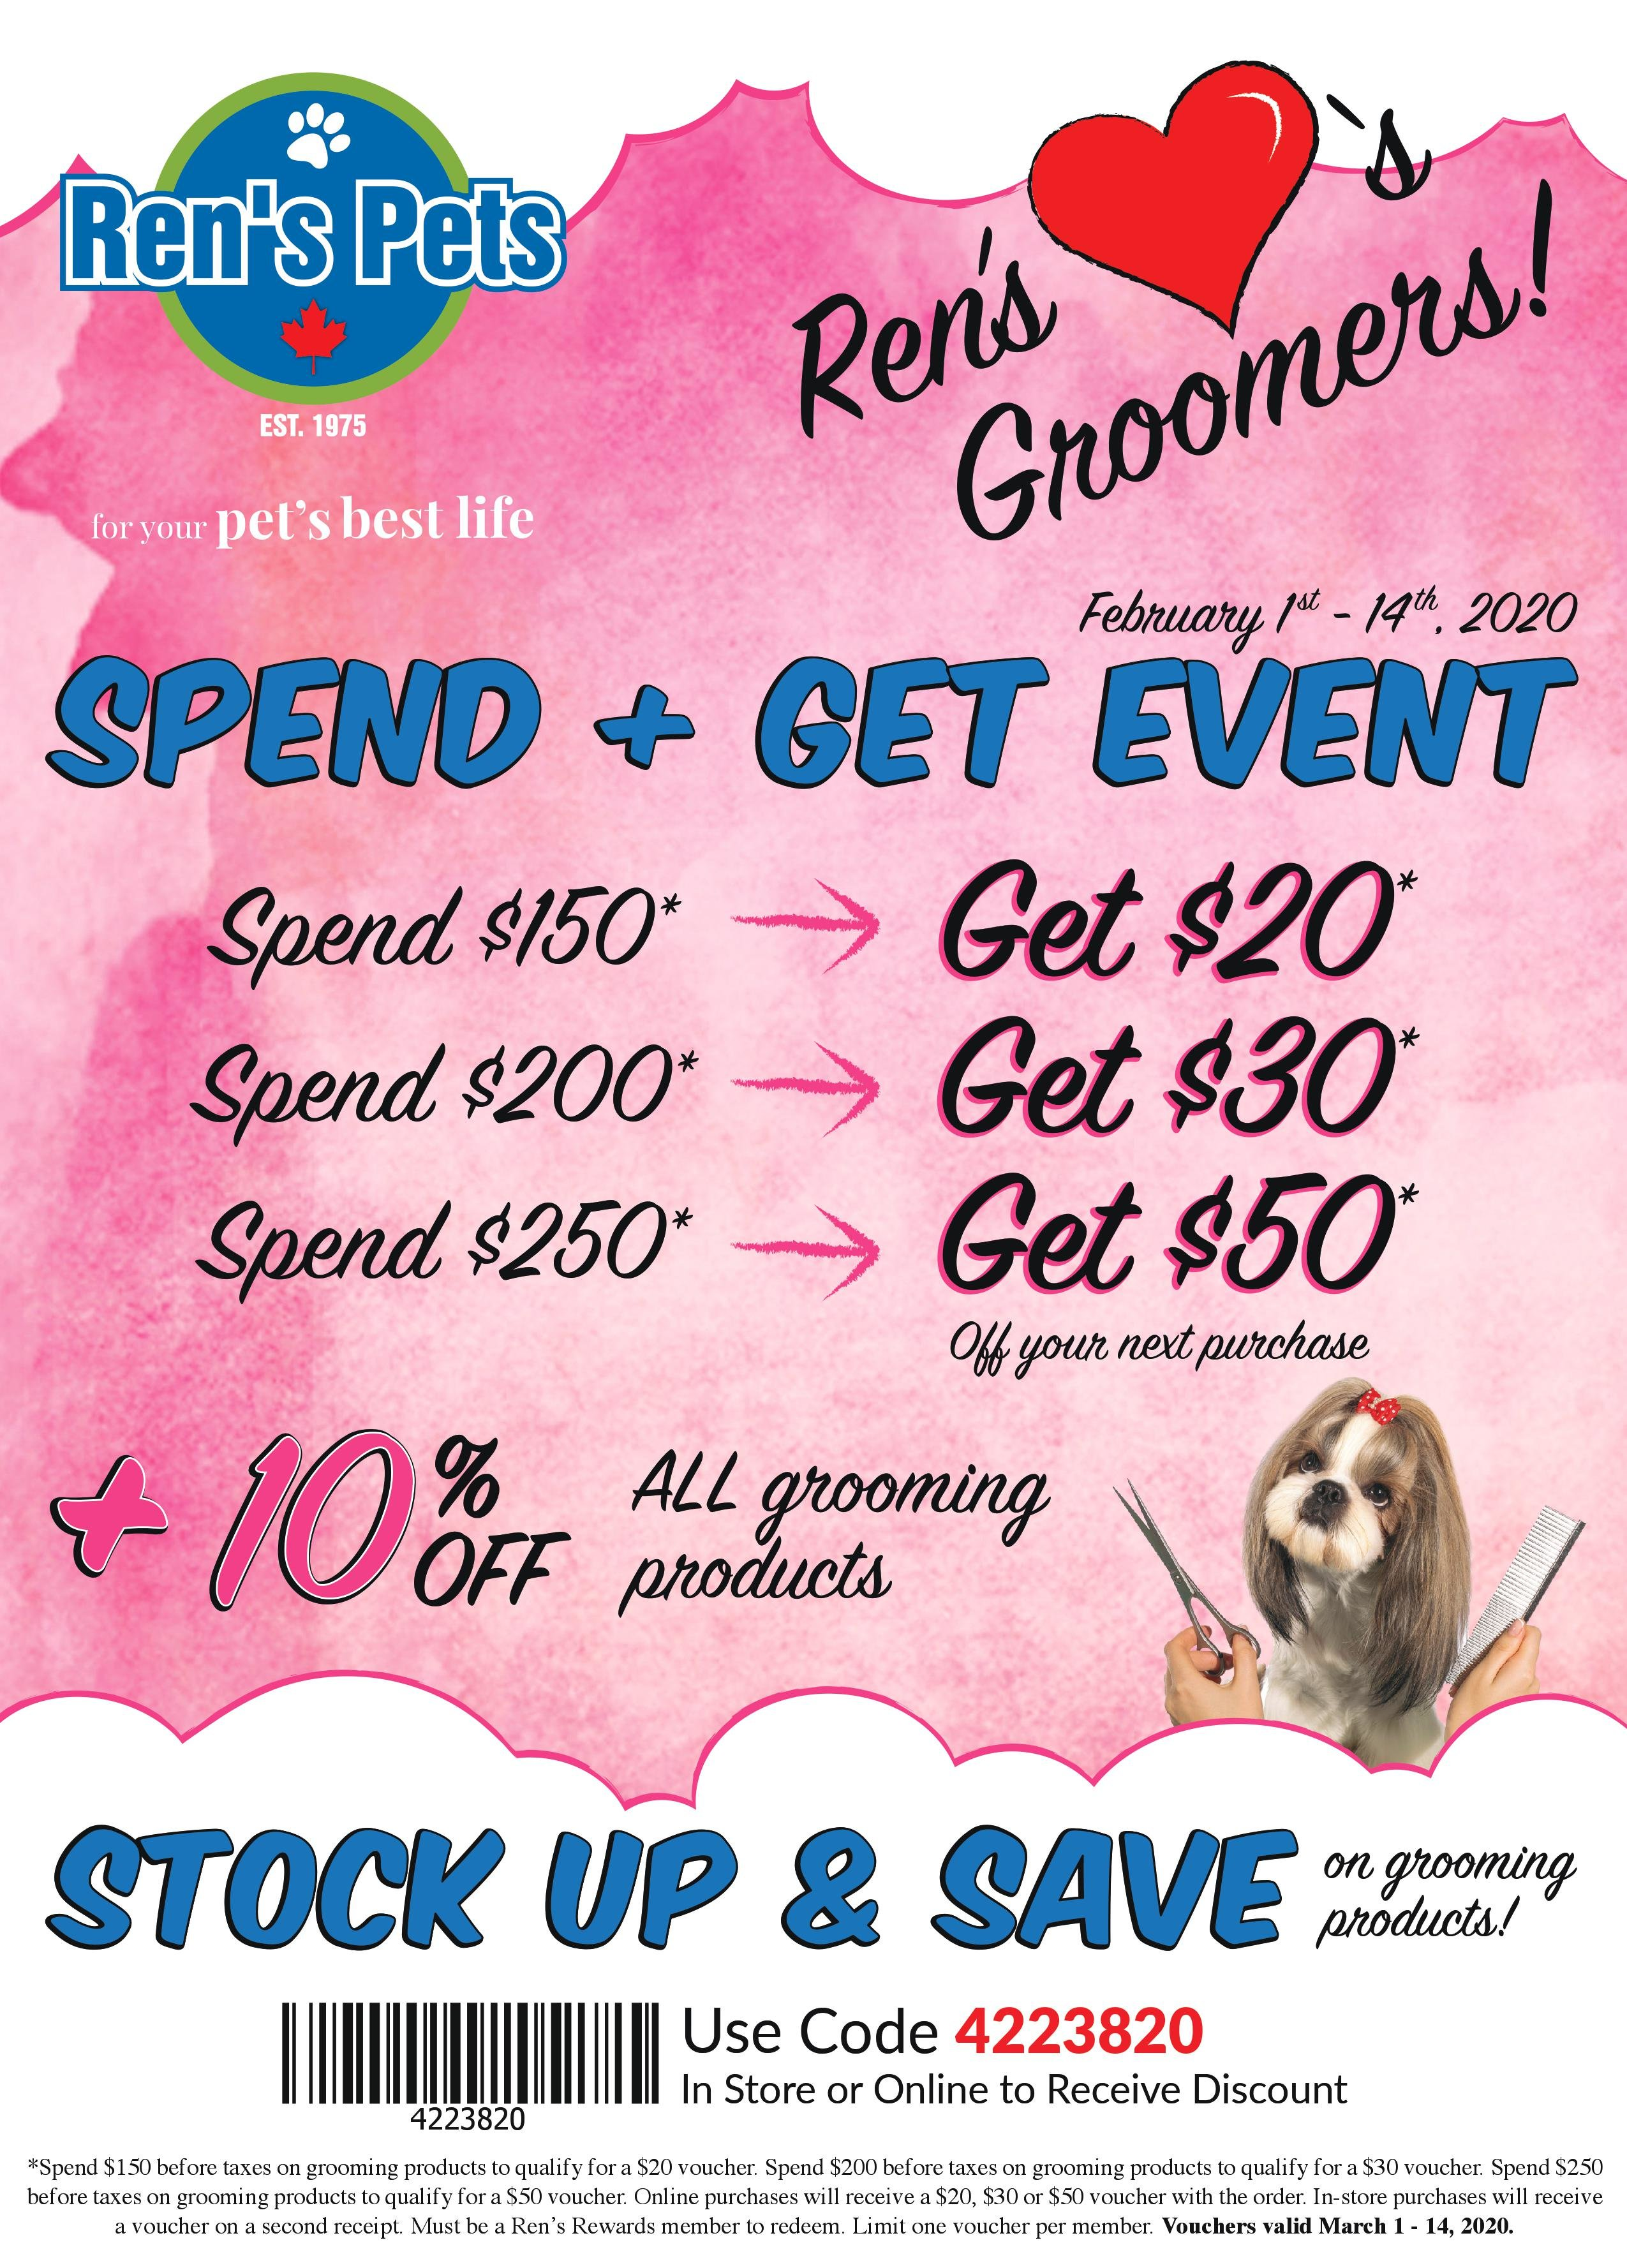 Ren's Loves Groomers! Spend + Get Event February 1st - 14th, 2020. Spend $150 get $20 on grooming products. Spend $200 get $30 on grooming products. Spend $250 get $50 on grooming products. Off your next purchase. Plus 10% off all grooming products.